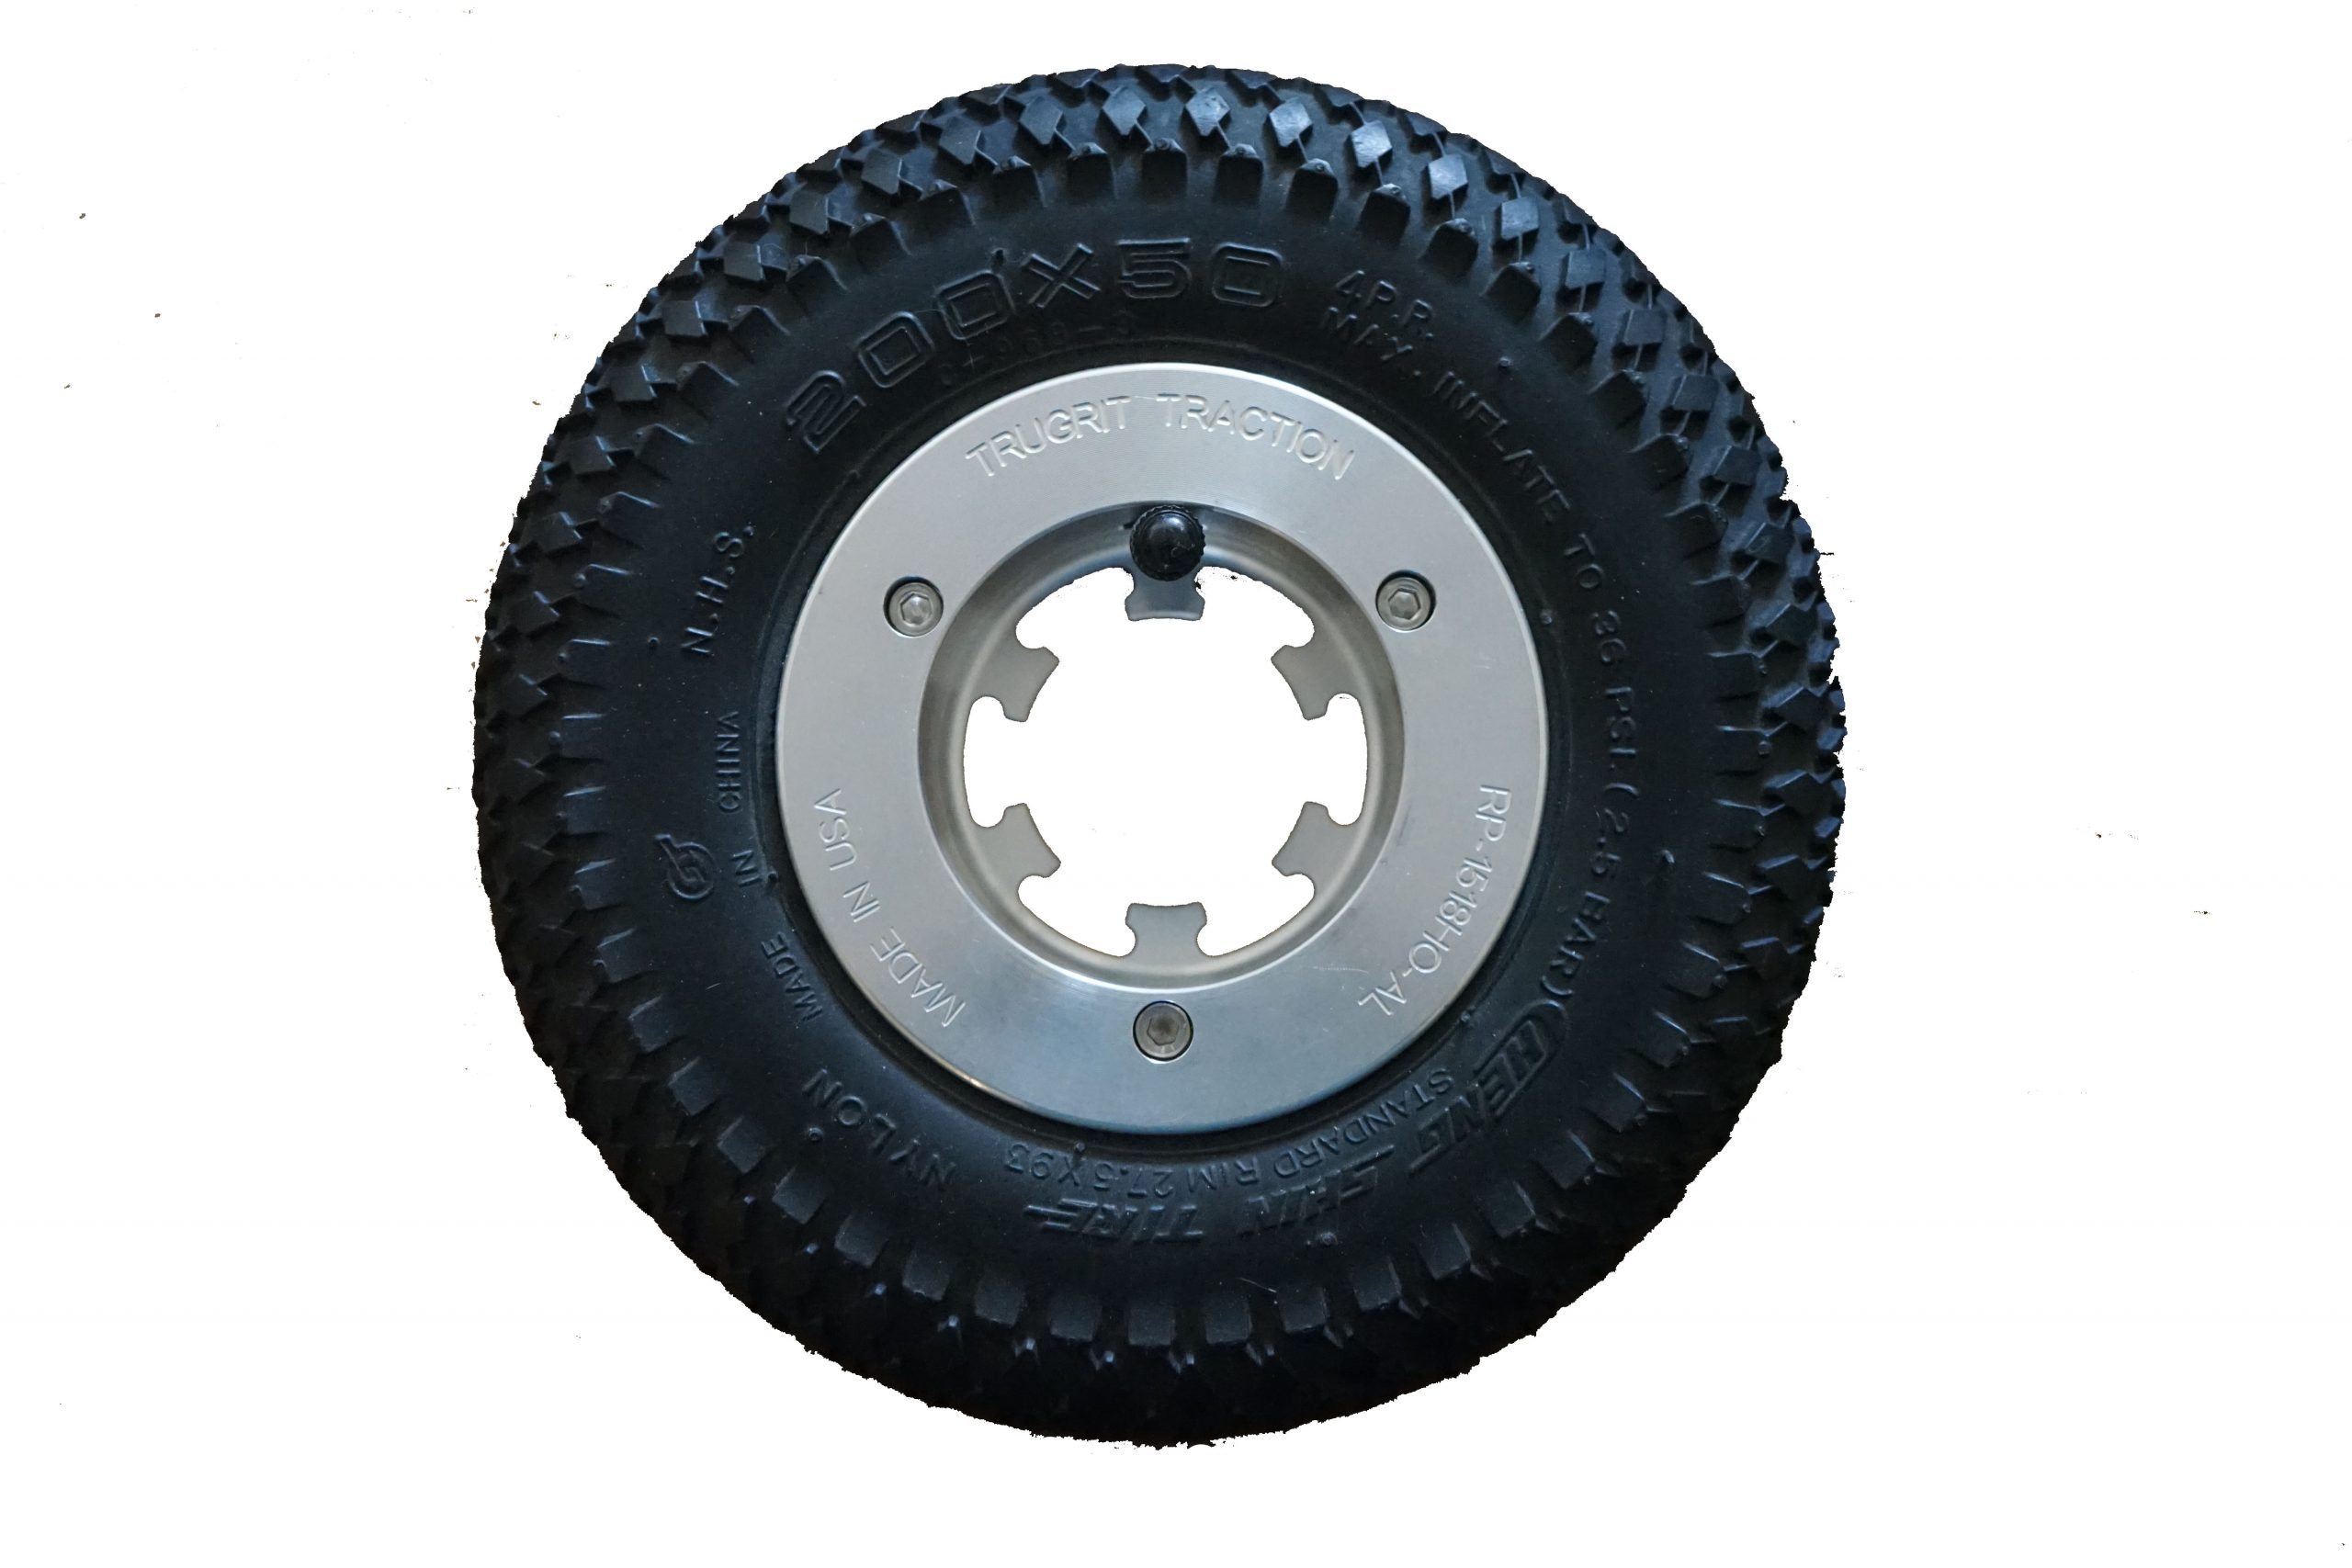 200mm Tires by TruGrit Traction